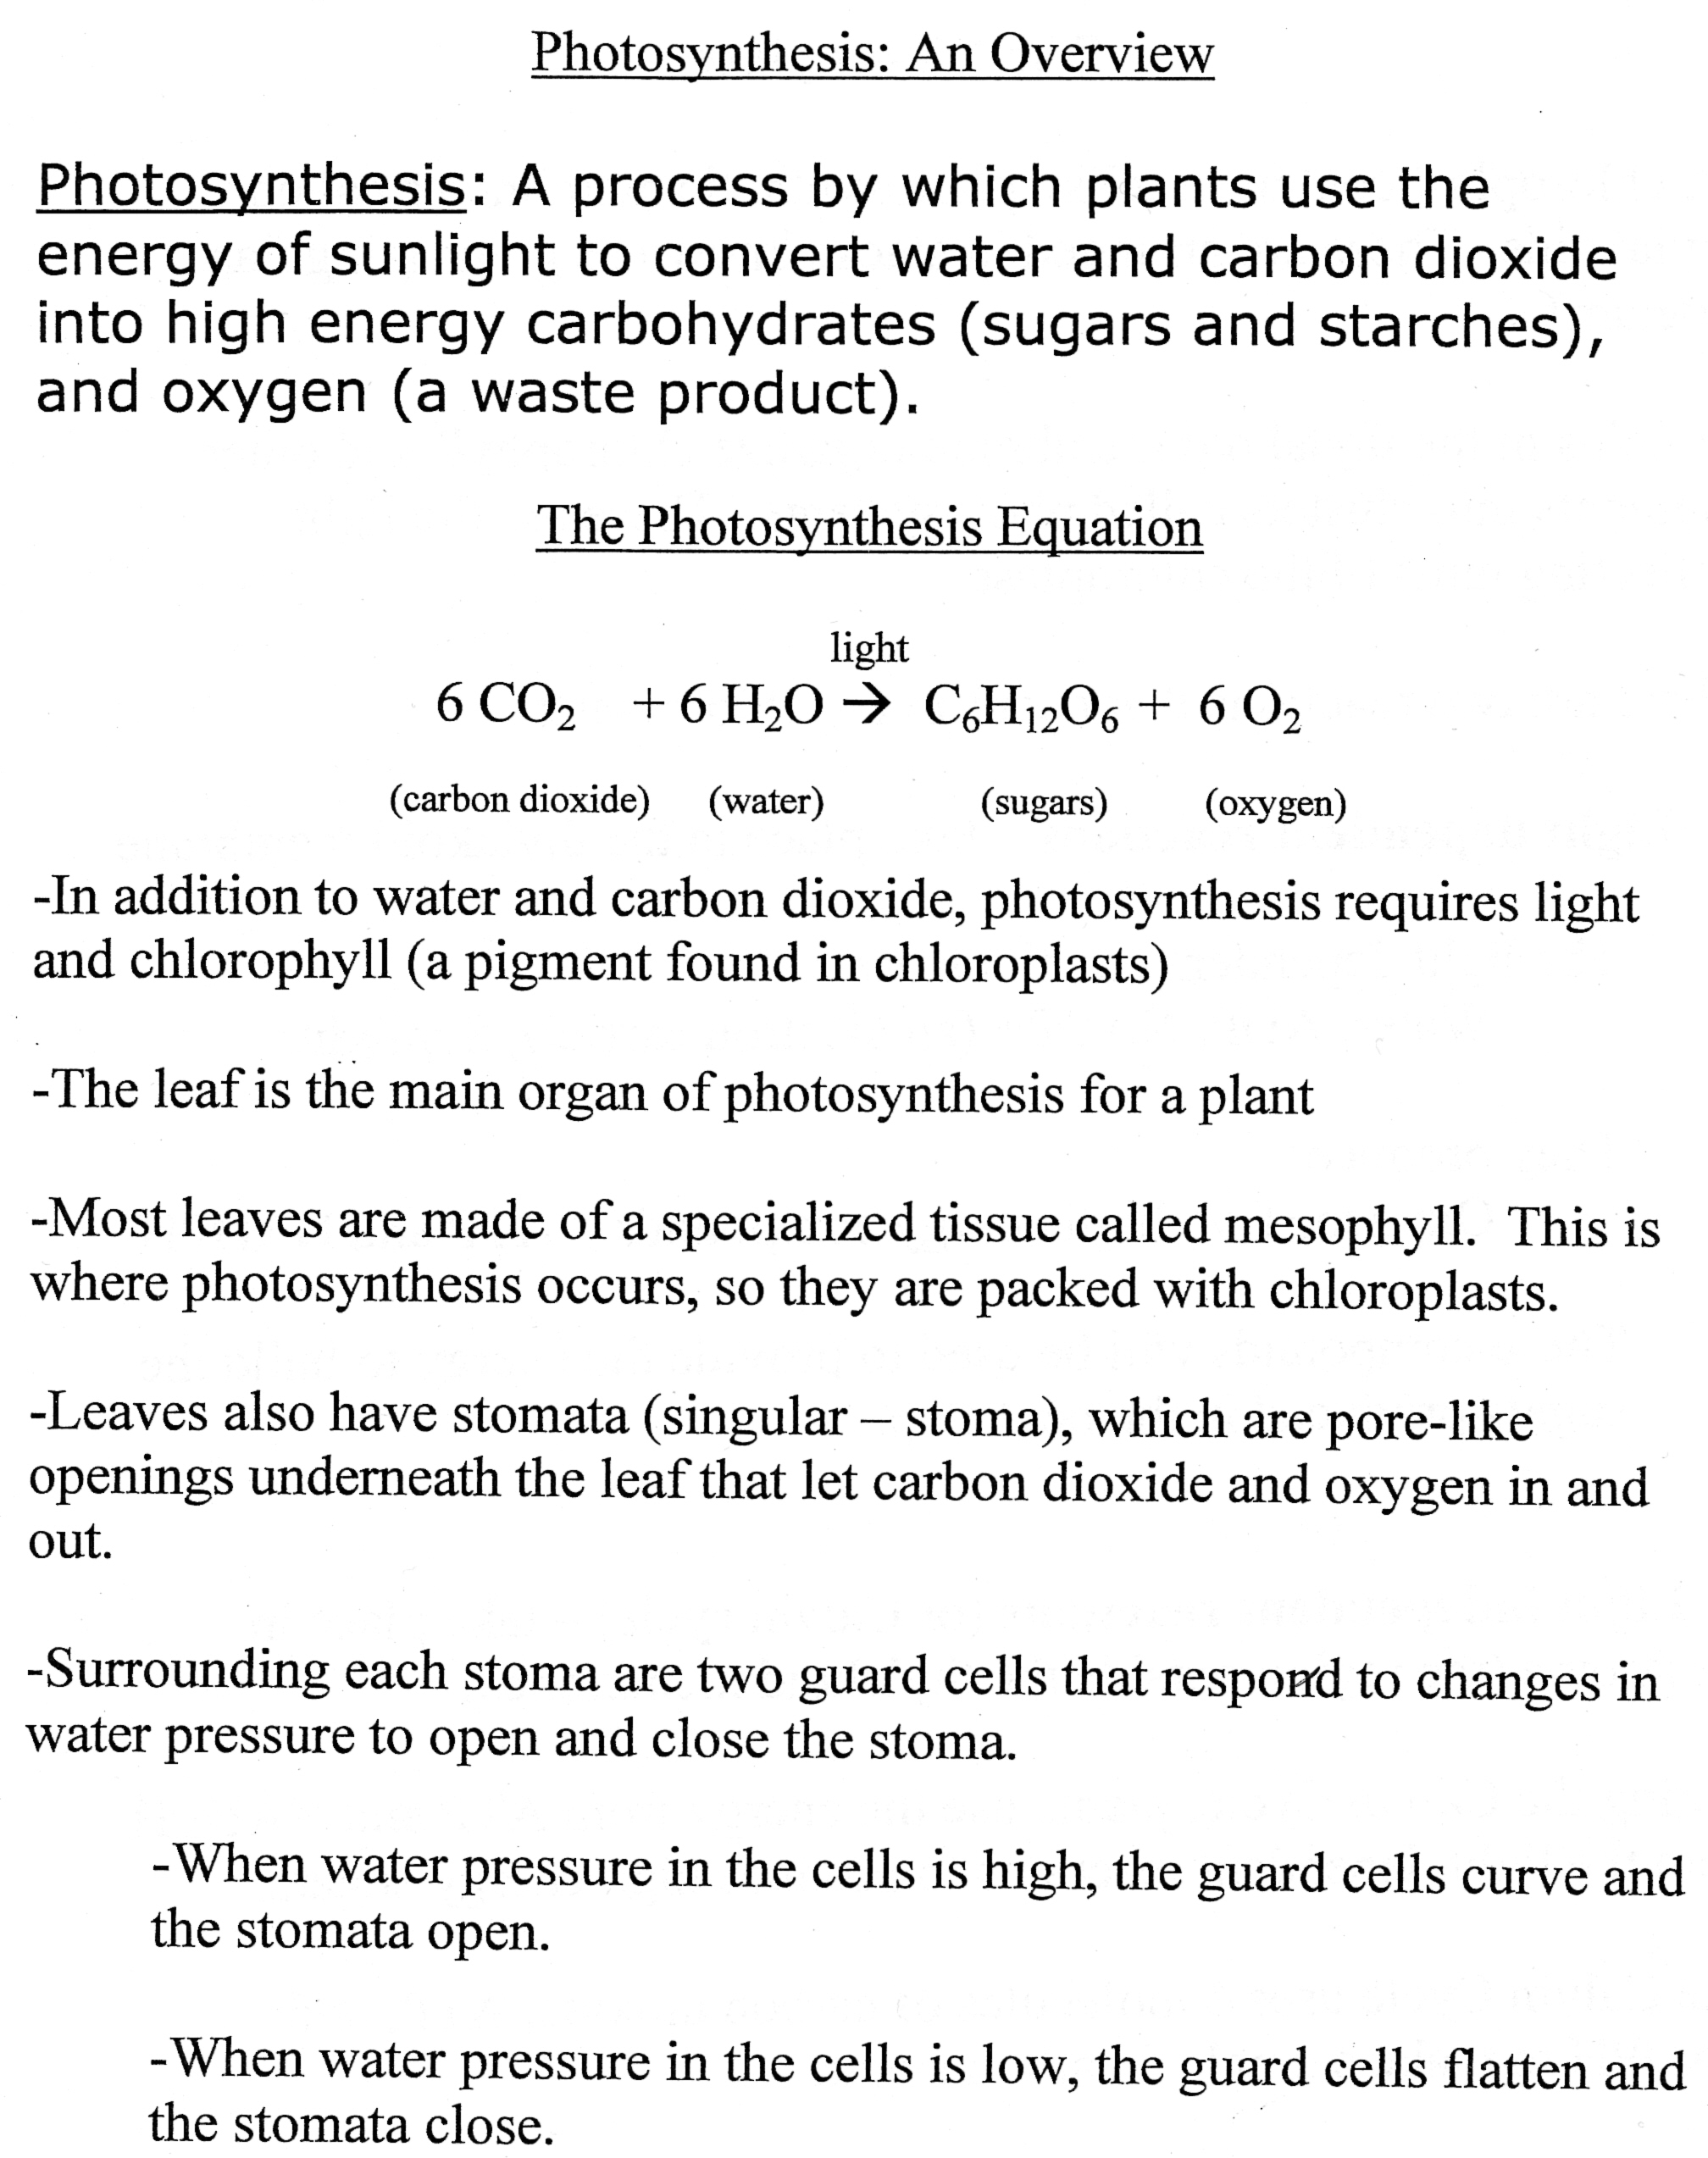 15 Best Images Of Photosynthesis Lab Worksheet